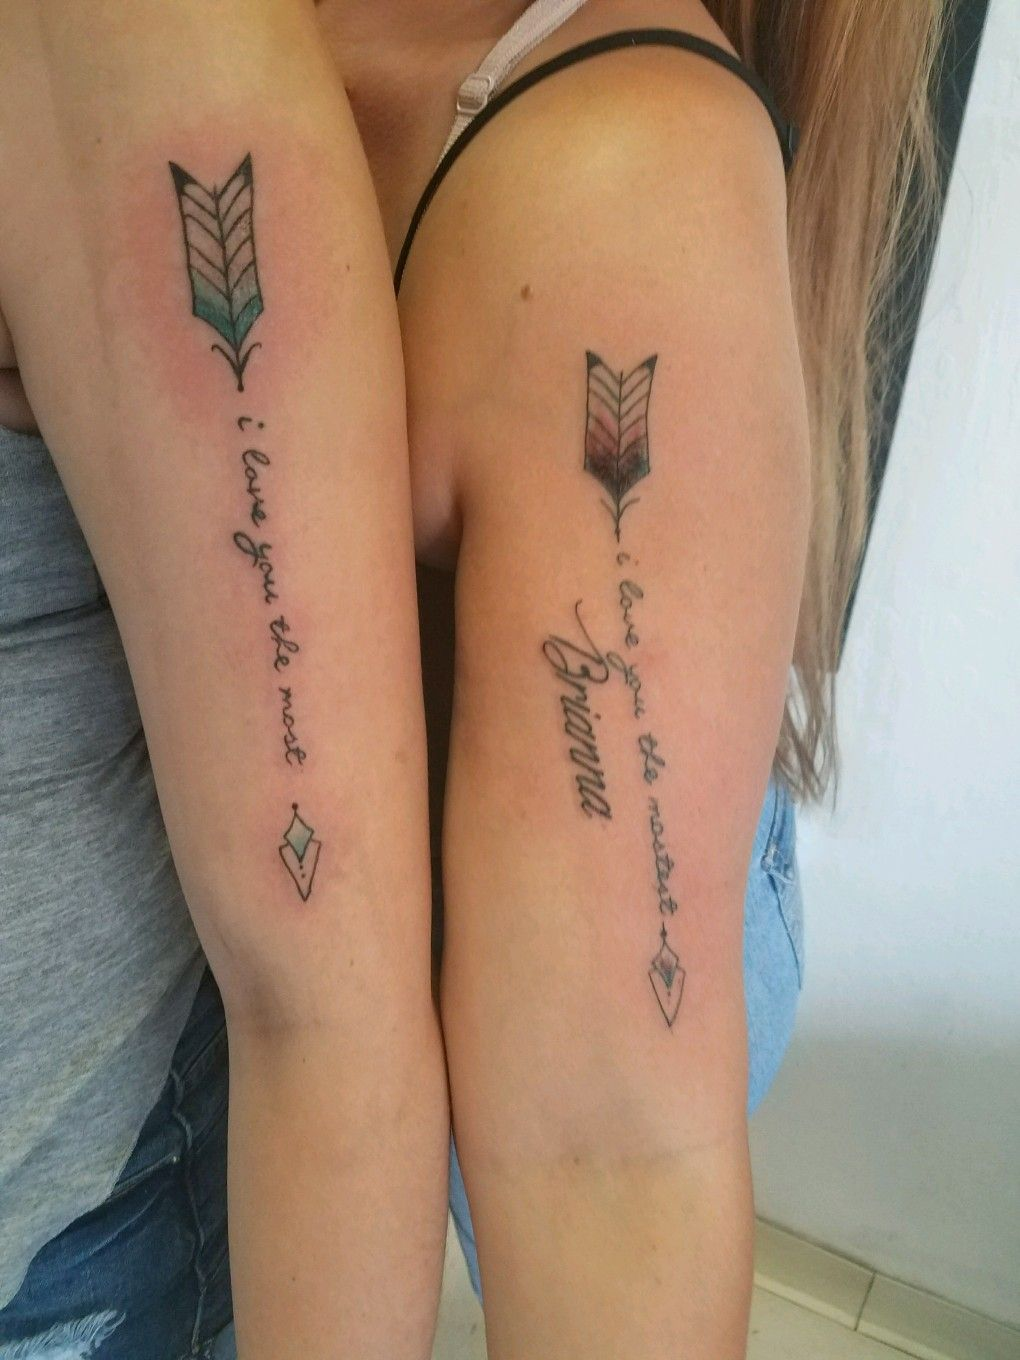 Mother Daughter Tattoos I Love You The Most I Love You The Mostest Arrows Tattoos For Lovers Couples Tattoo Designs Couple Tattoos